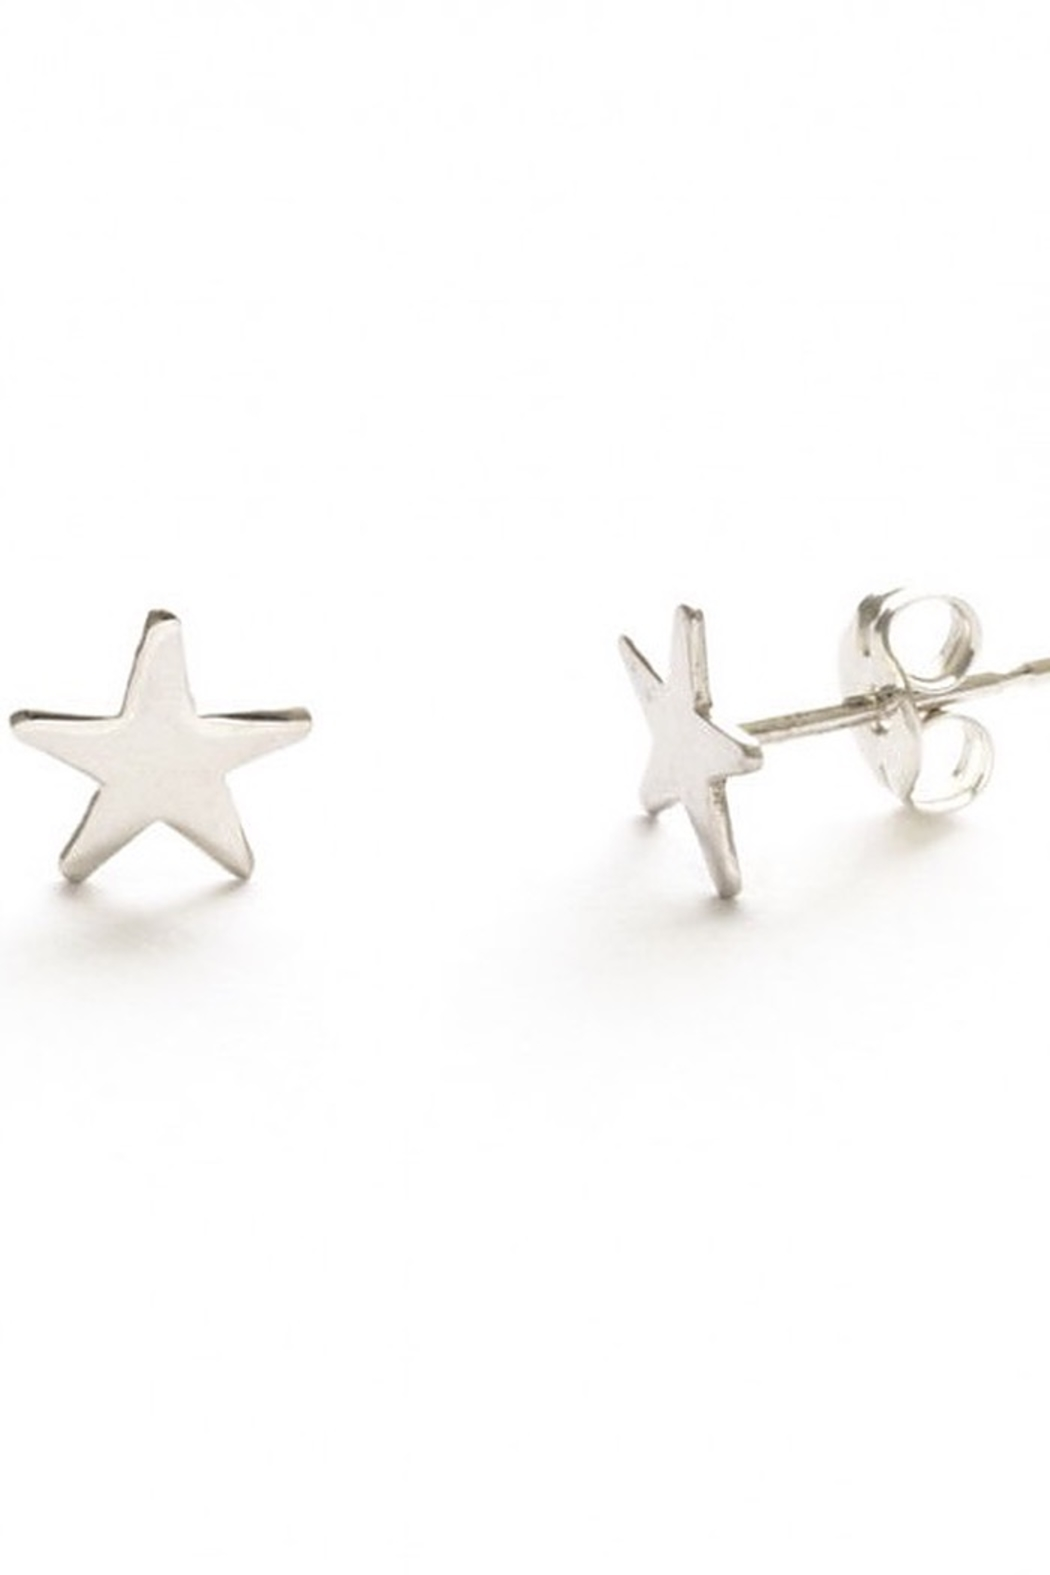 Amano Trading, Inc. sterling silver star studs - Main Image